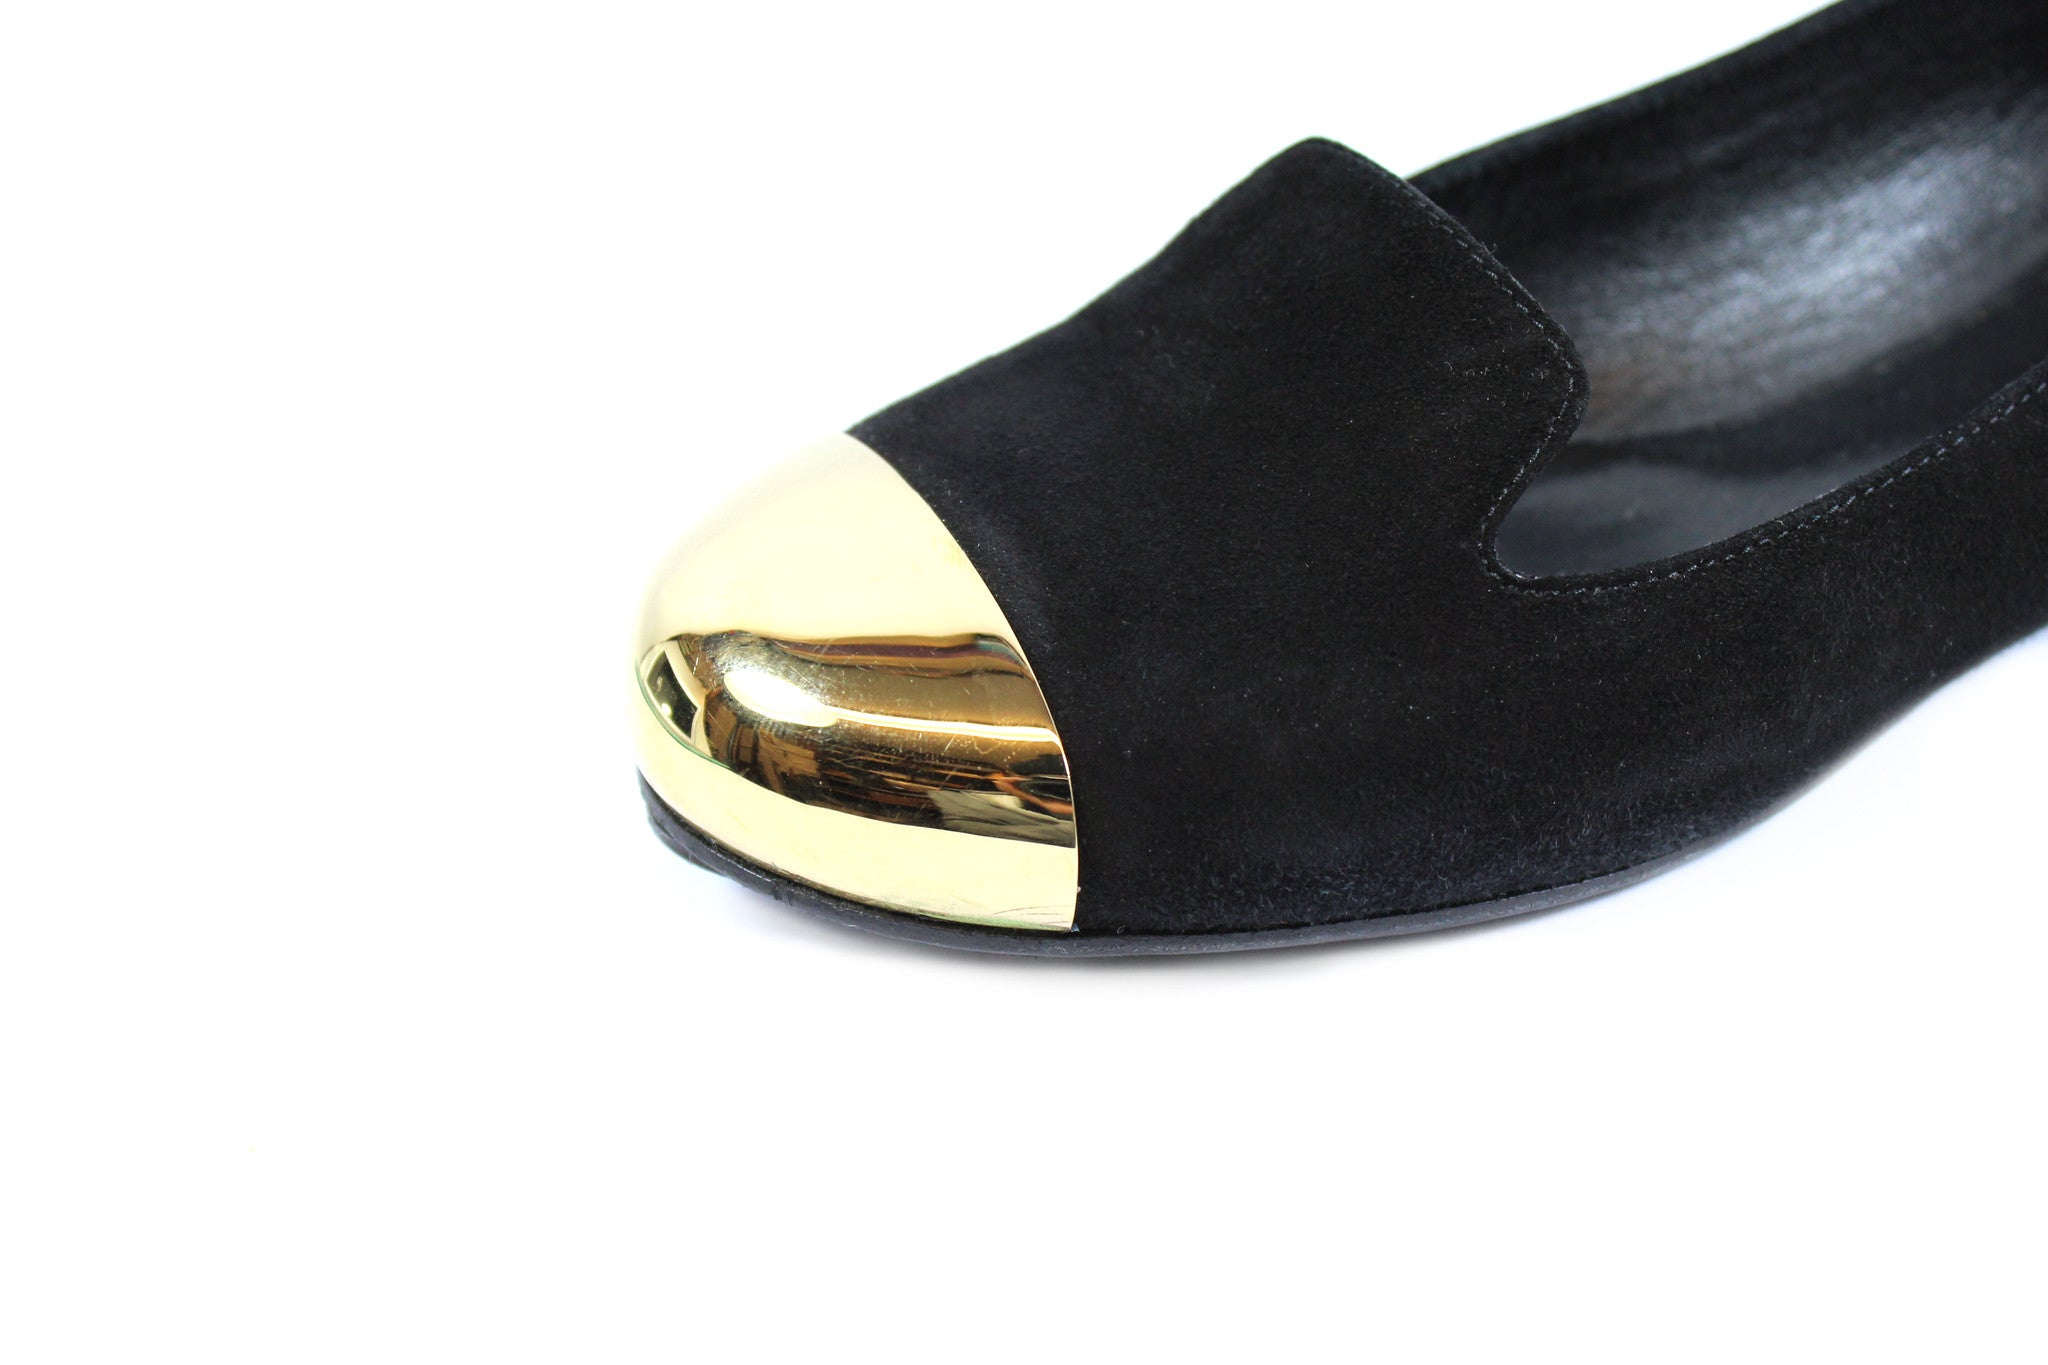 Yves Saint Laurent 'Evalyn' Suede Flats with Gold Cap Toe (Size 36.5) - Encore Consignment - 5